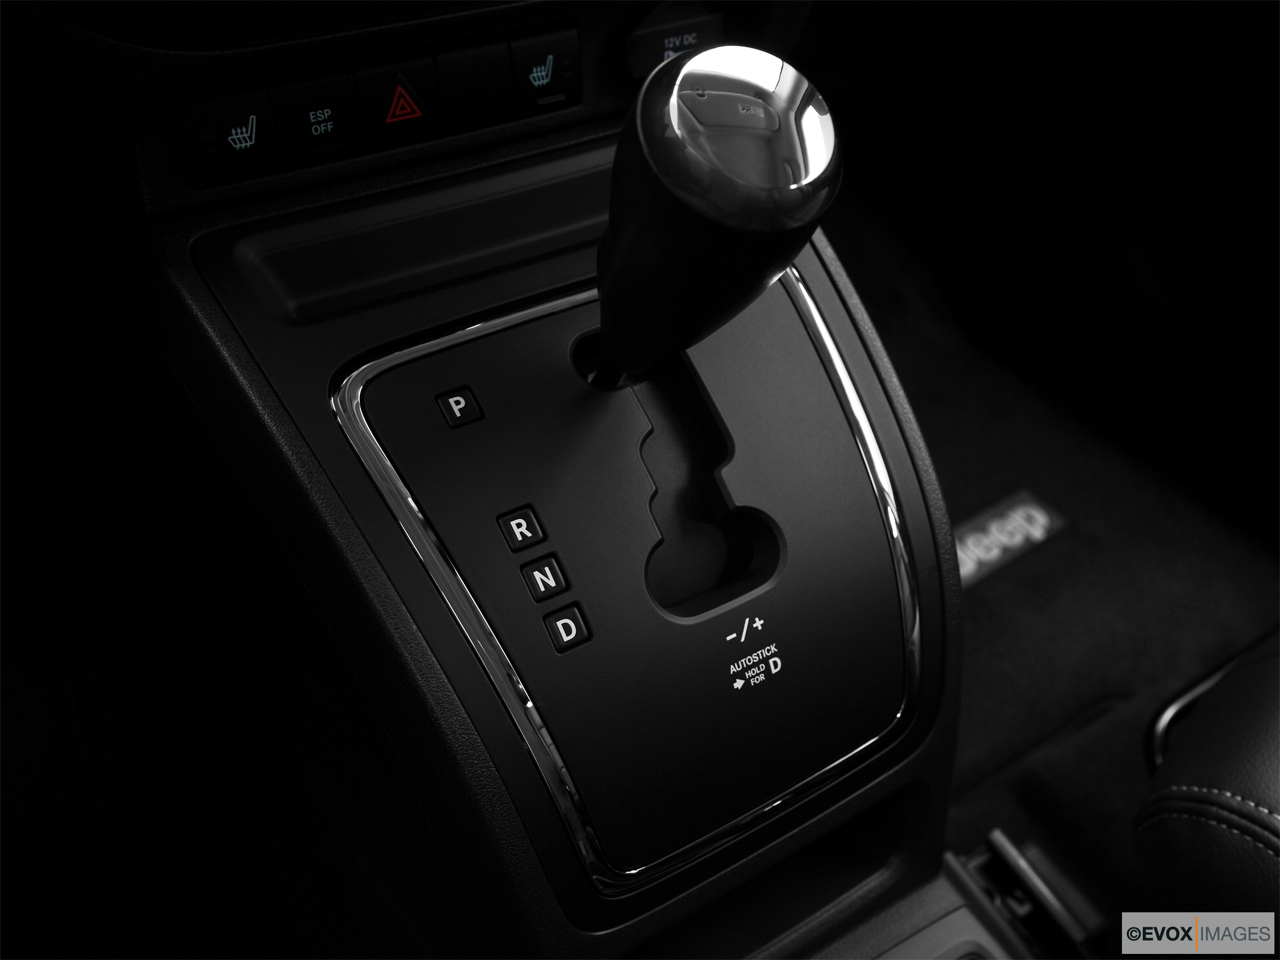 2010 Jeep Patriot Limited Gear shifter/center console.